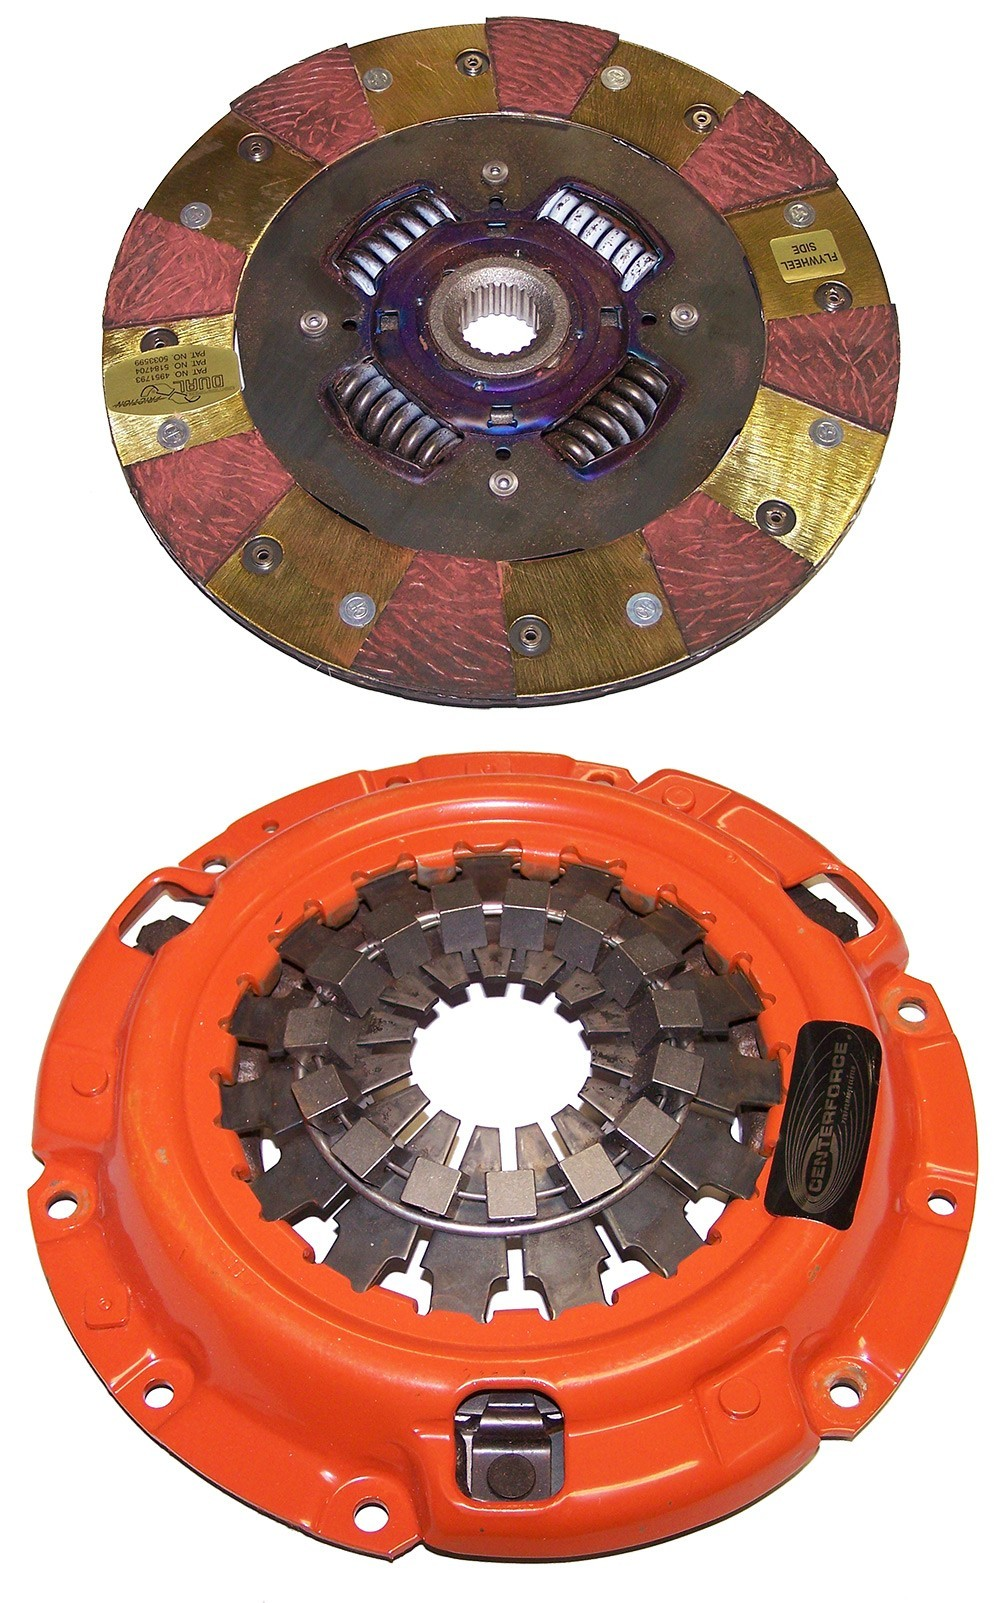 83-92 N/A Rx7 Centerforce Dual Friction Clutch Kit (DF532009)